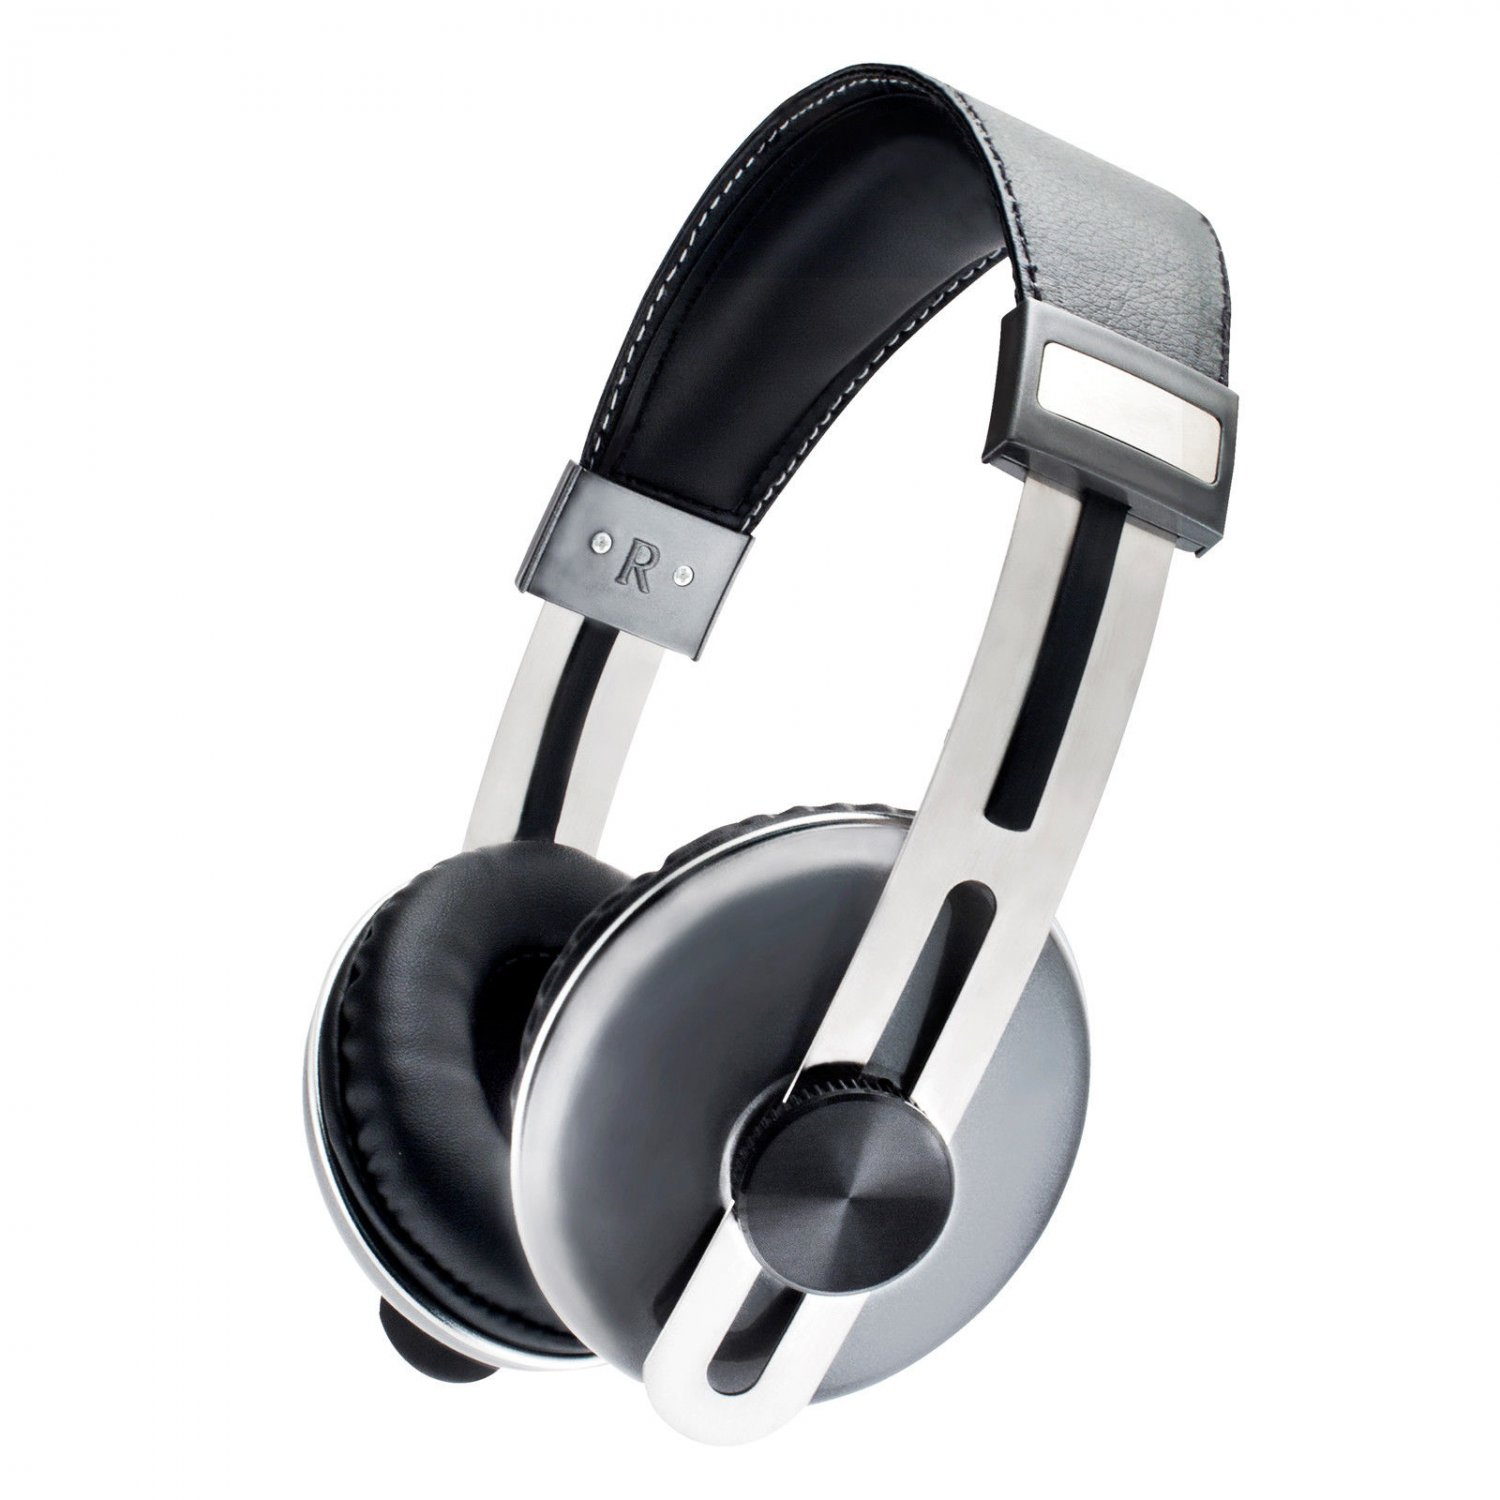 Sentry HM600 Pulse Pro Series Stereo Headphones with MIC (Black with Silver)